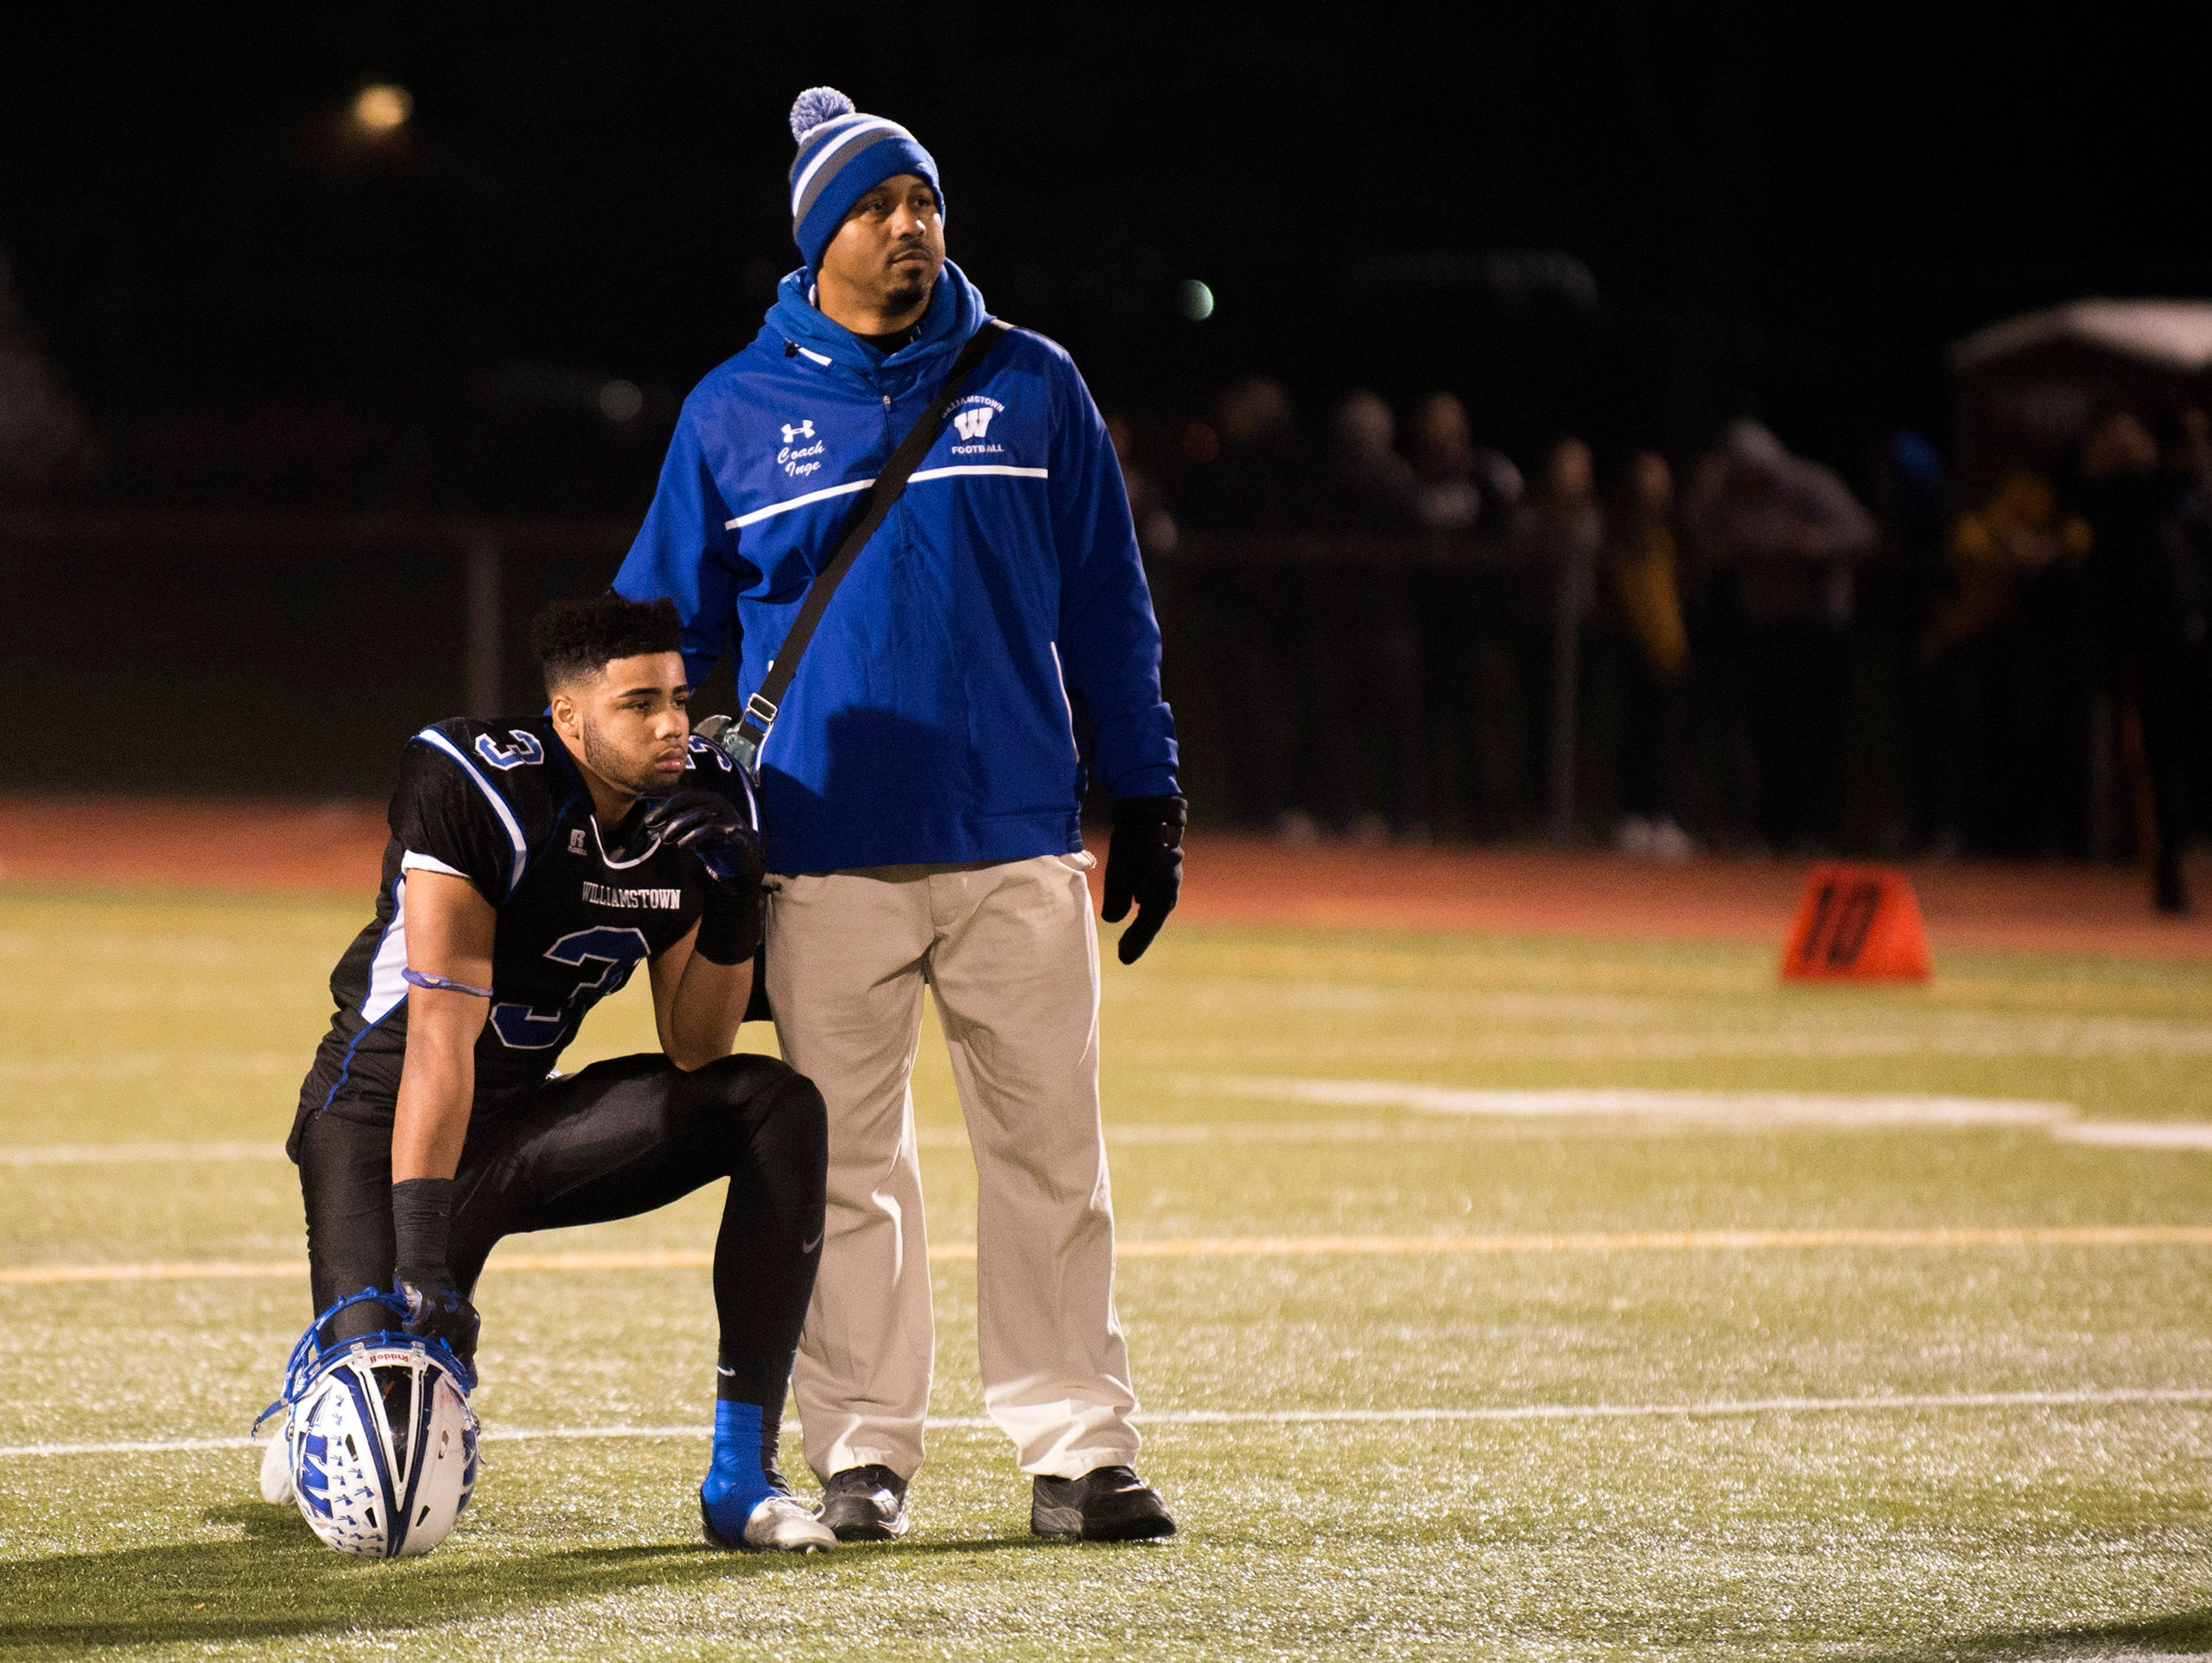 Williamstown's Eric Smith (3) takes a knee as Williamstown falls to Toms River North Saturday, Dec. 5 at Rowan University in Glassboro. Toms River North won 14-7, claiming the South Jersey Group 5 title.